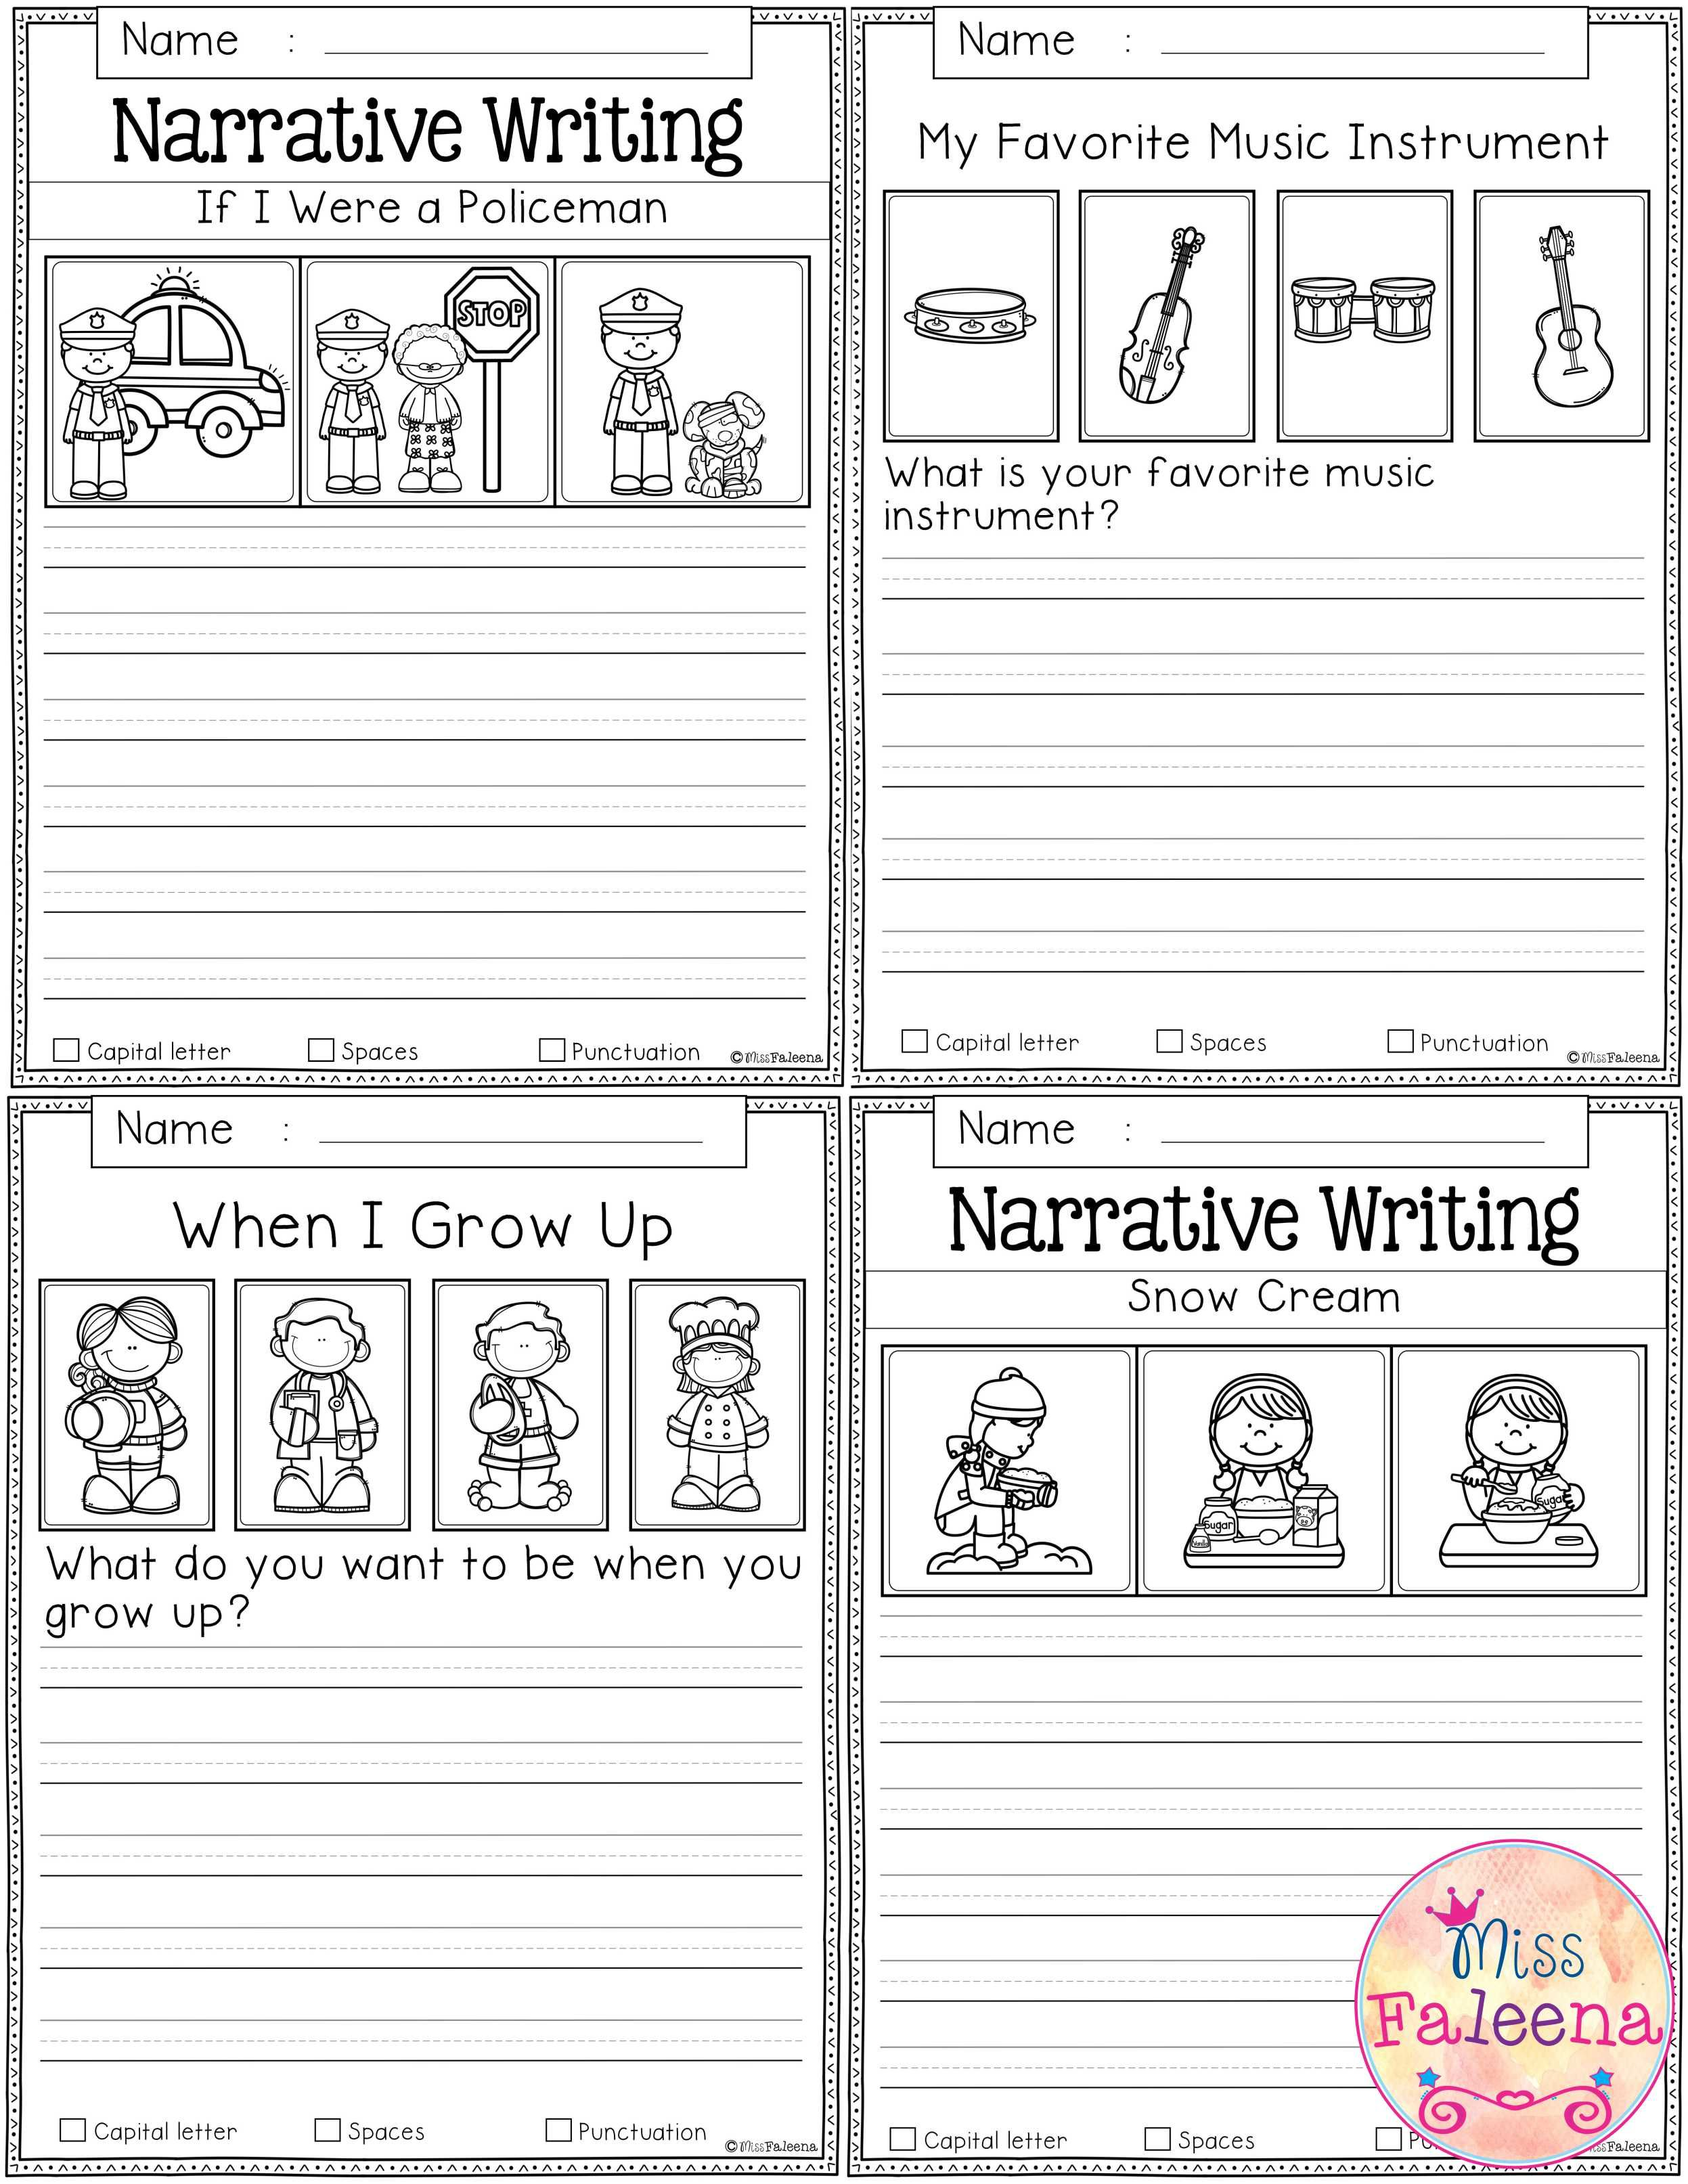 Free Writing Prompts With Images